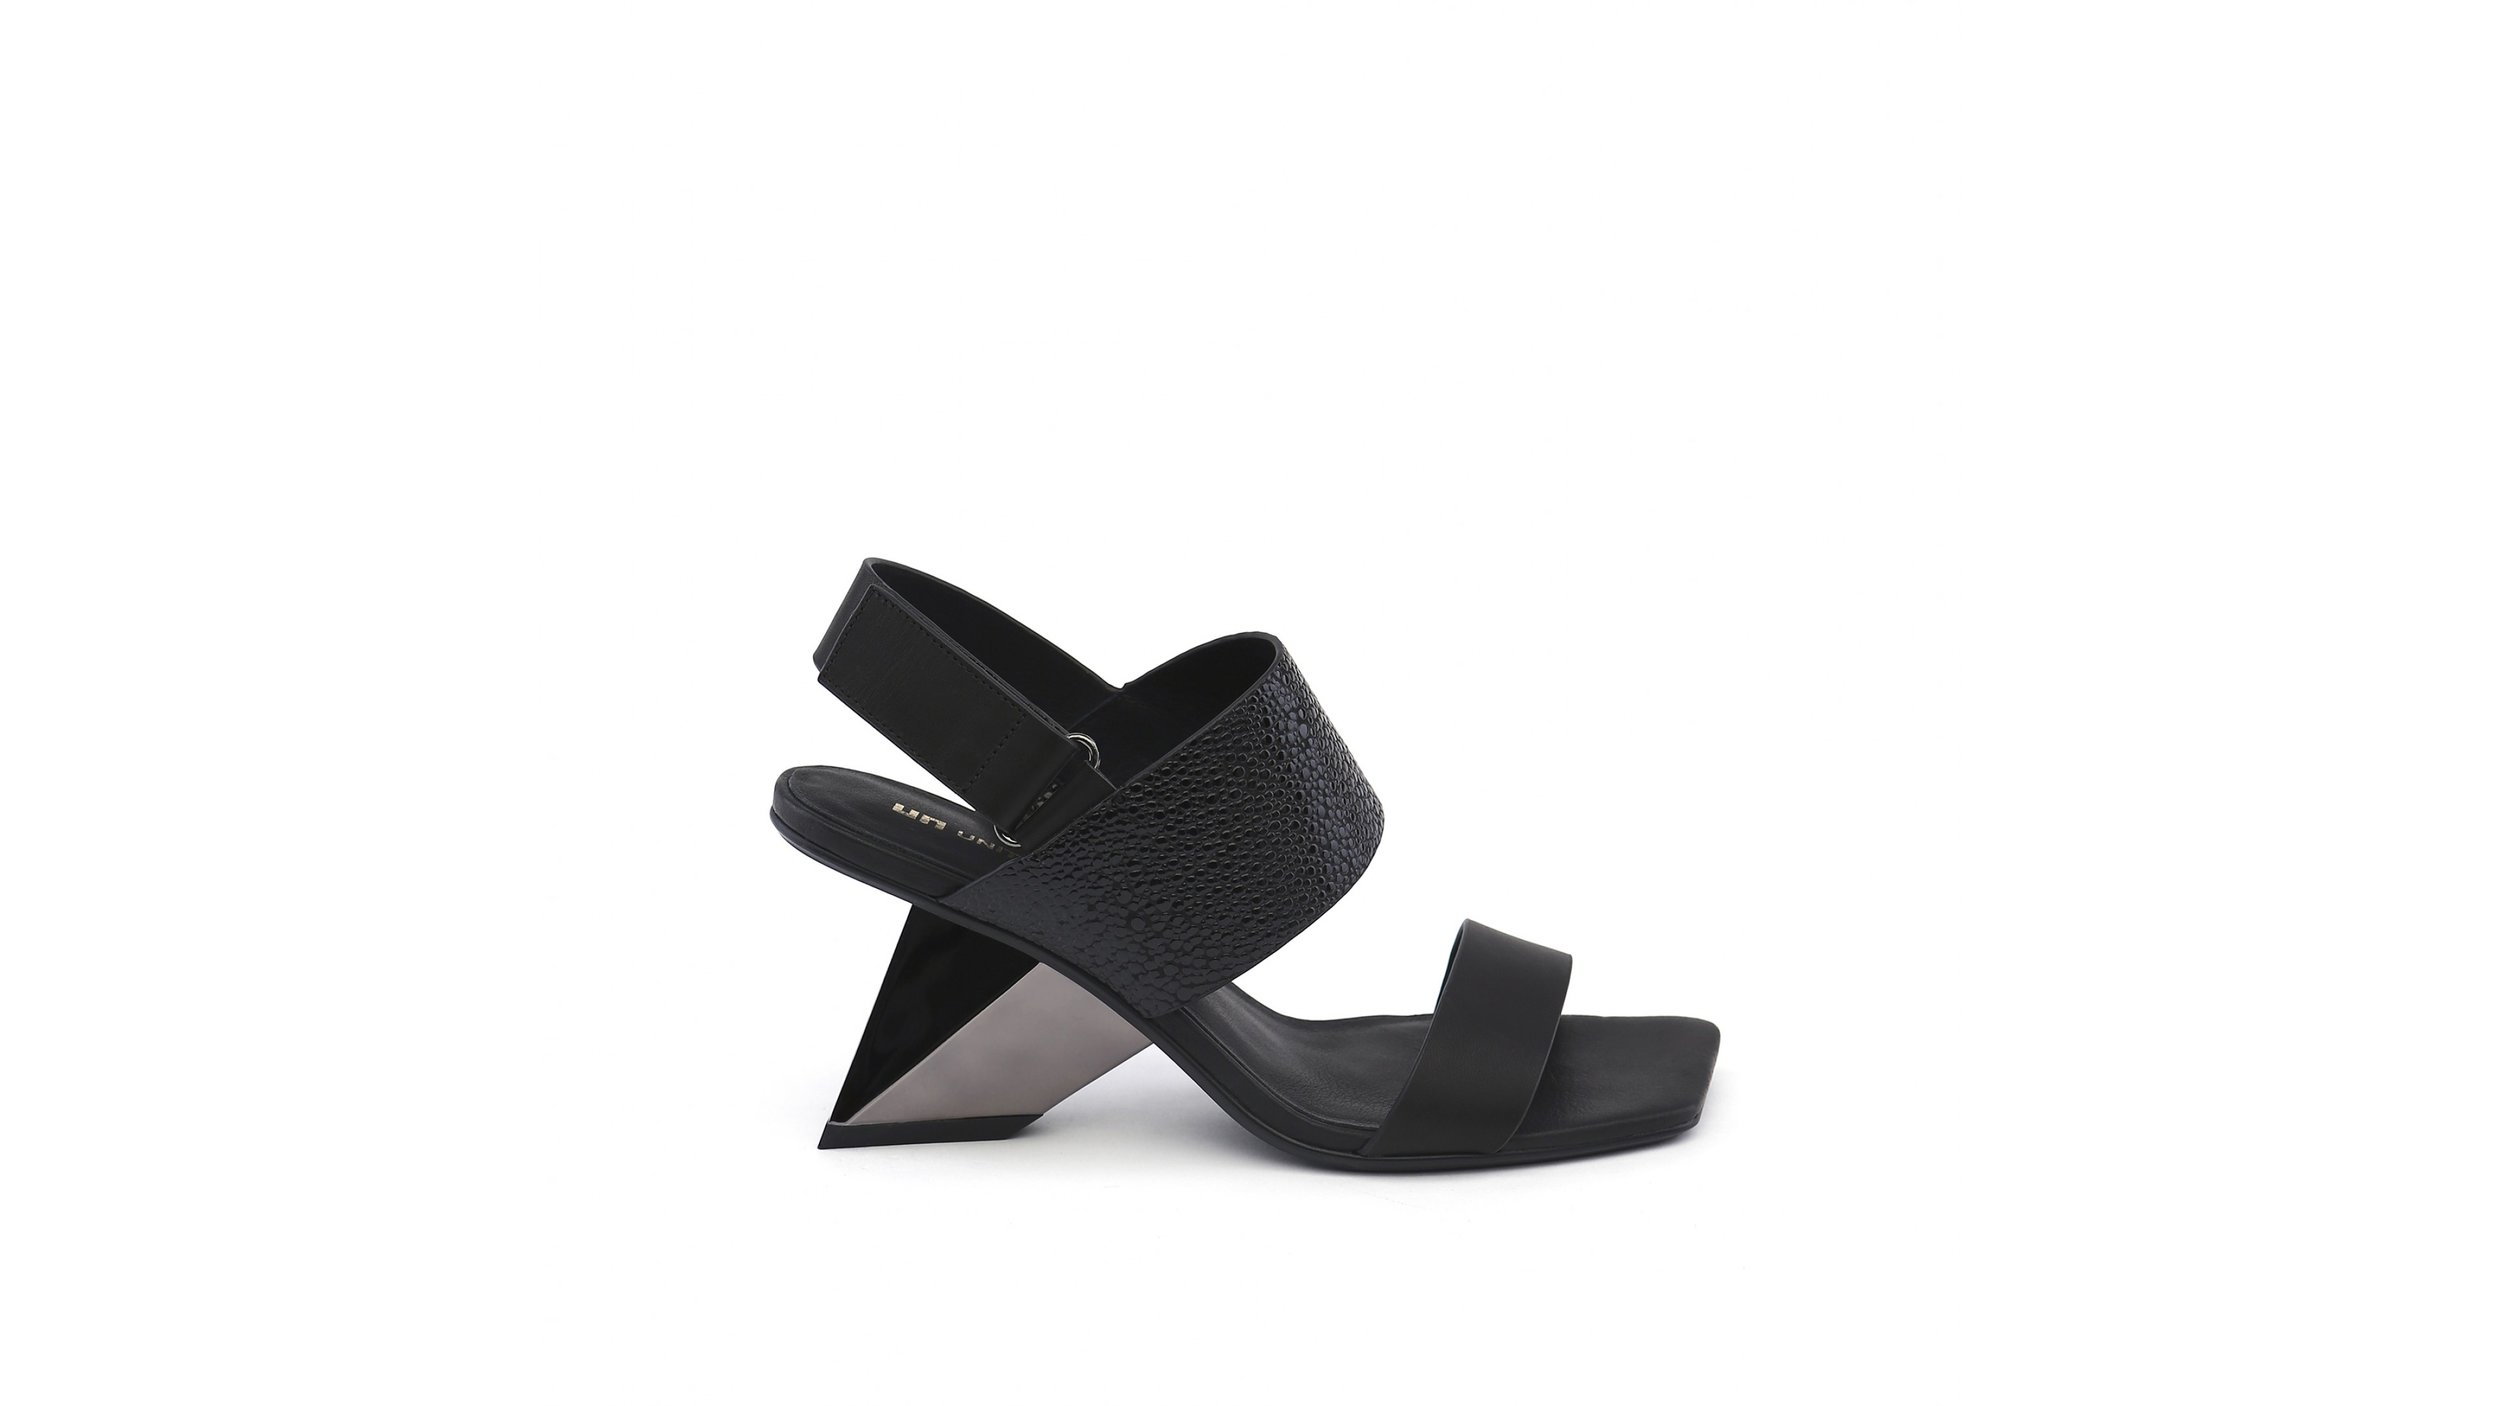 rockit-sandal-black-out.jpg